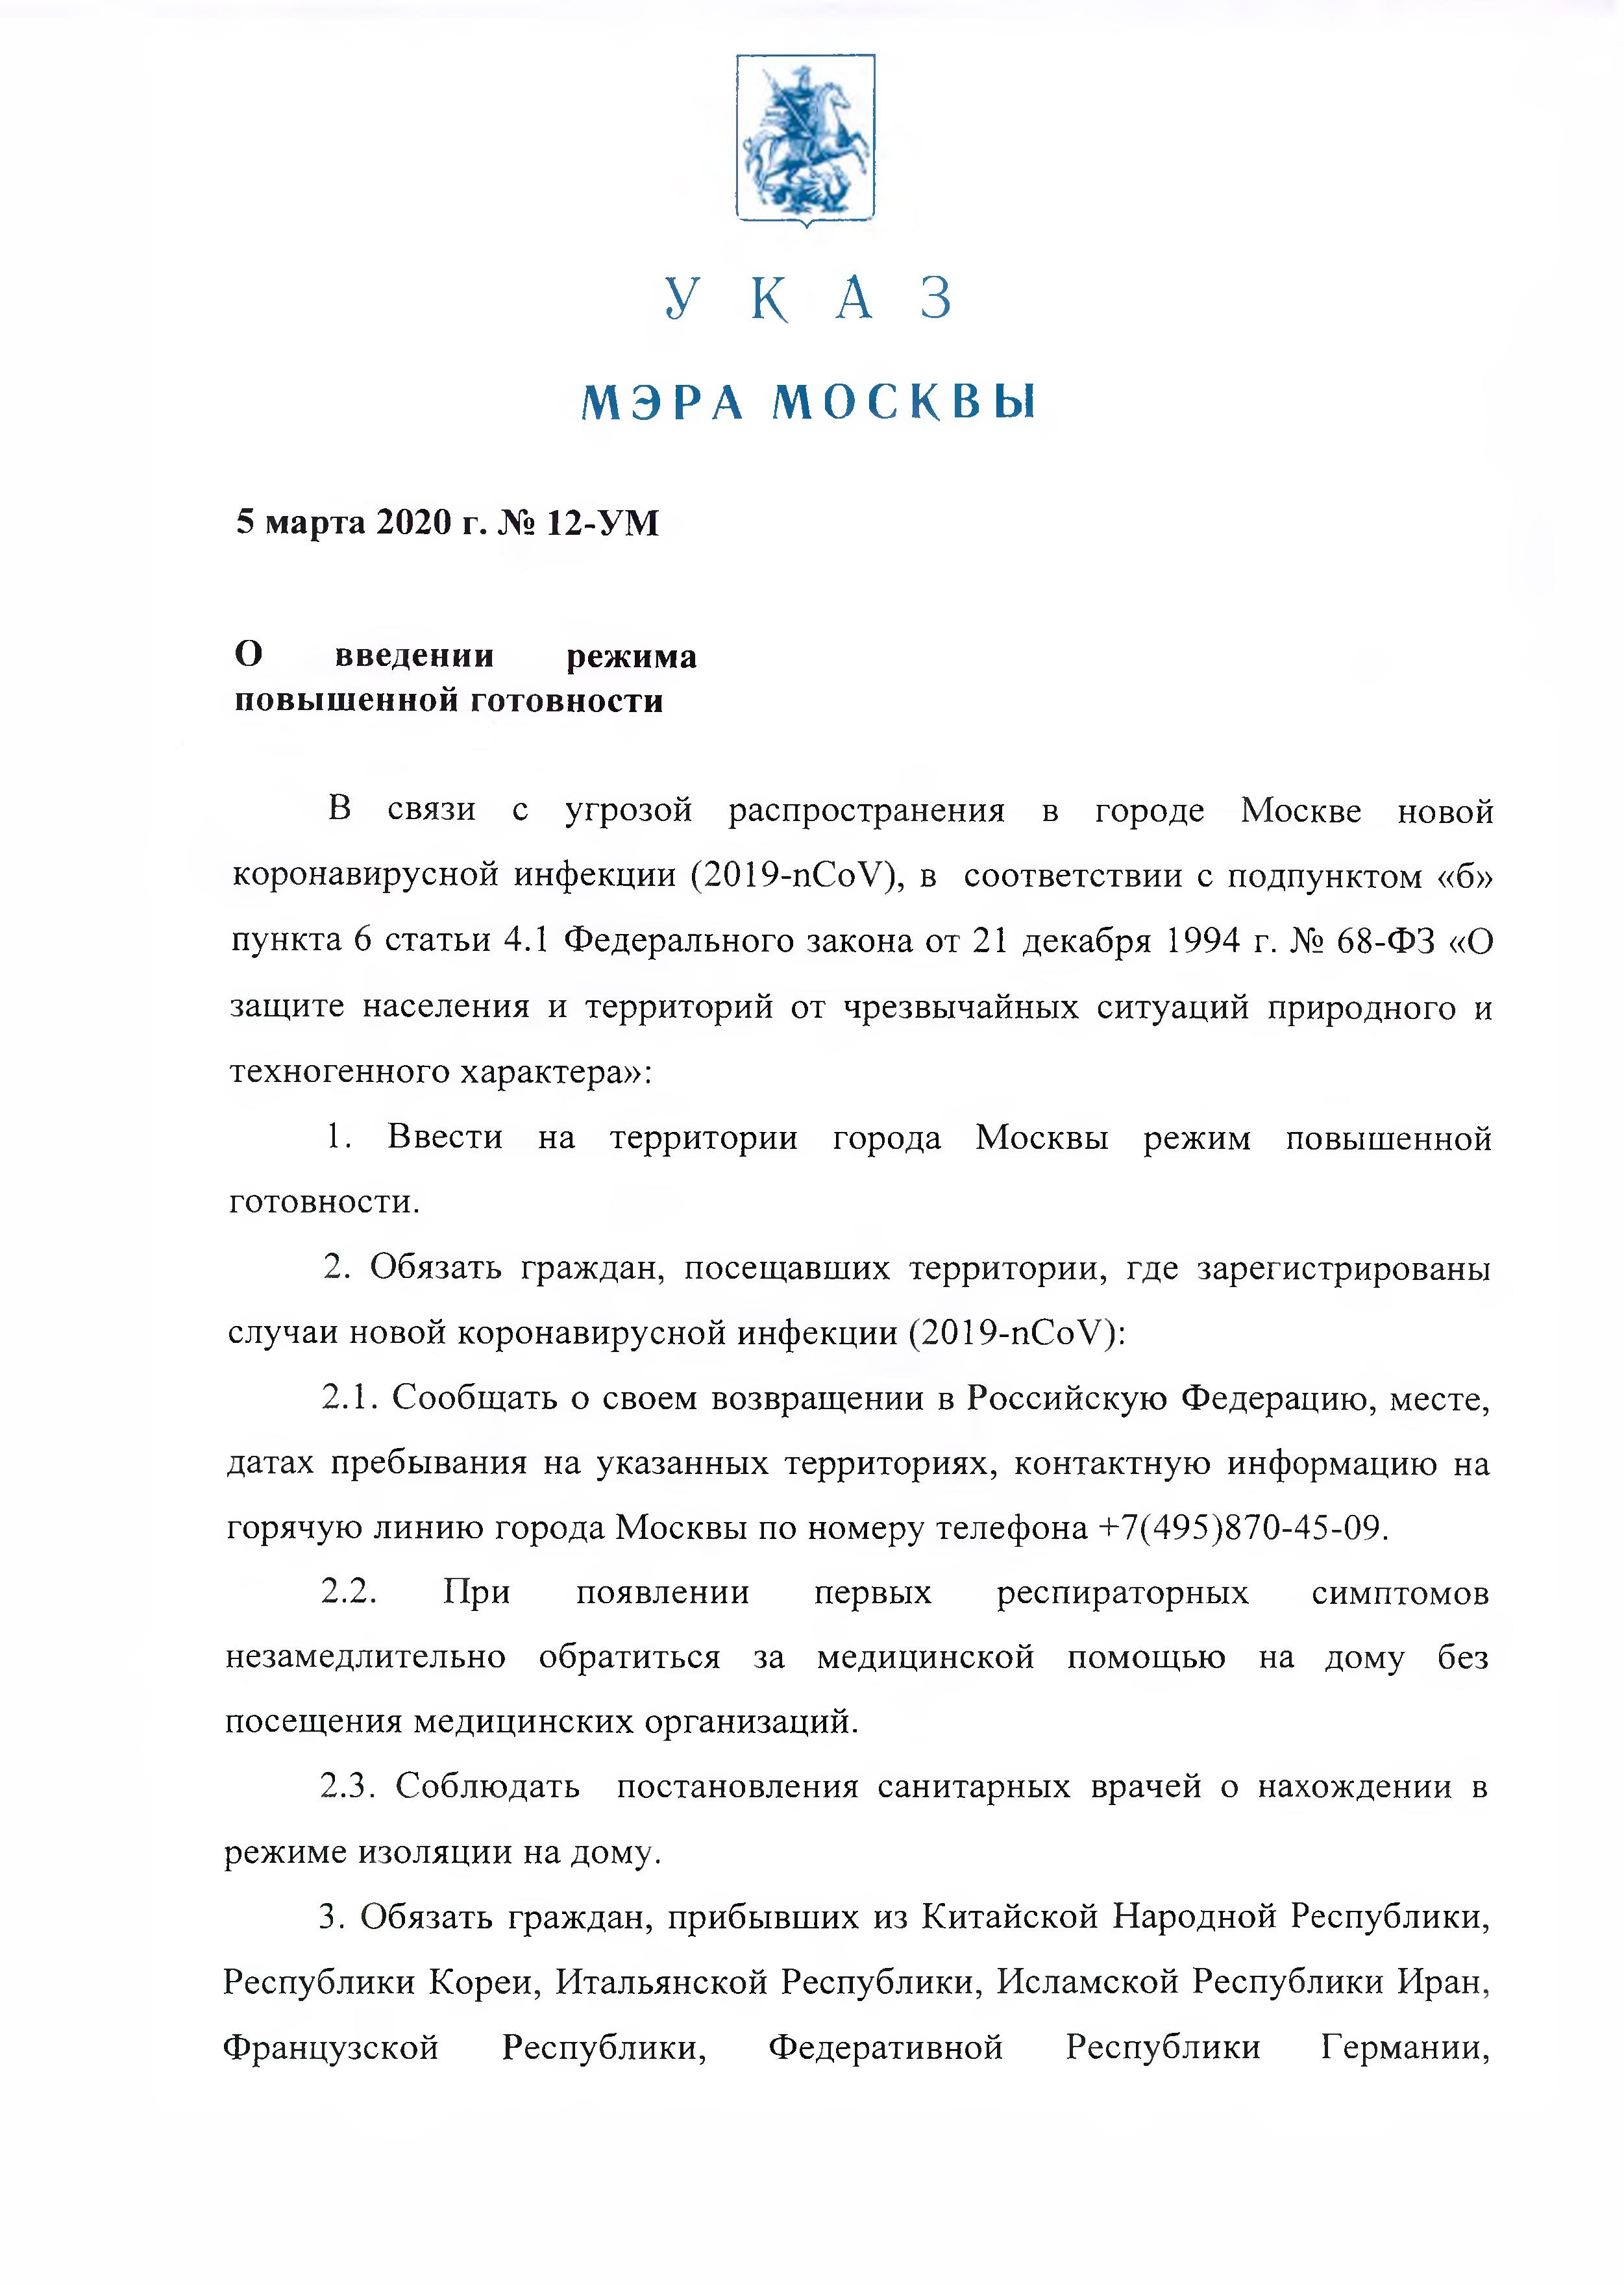 Decree from the Mayor of Moscow.1